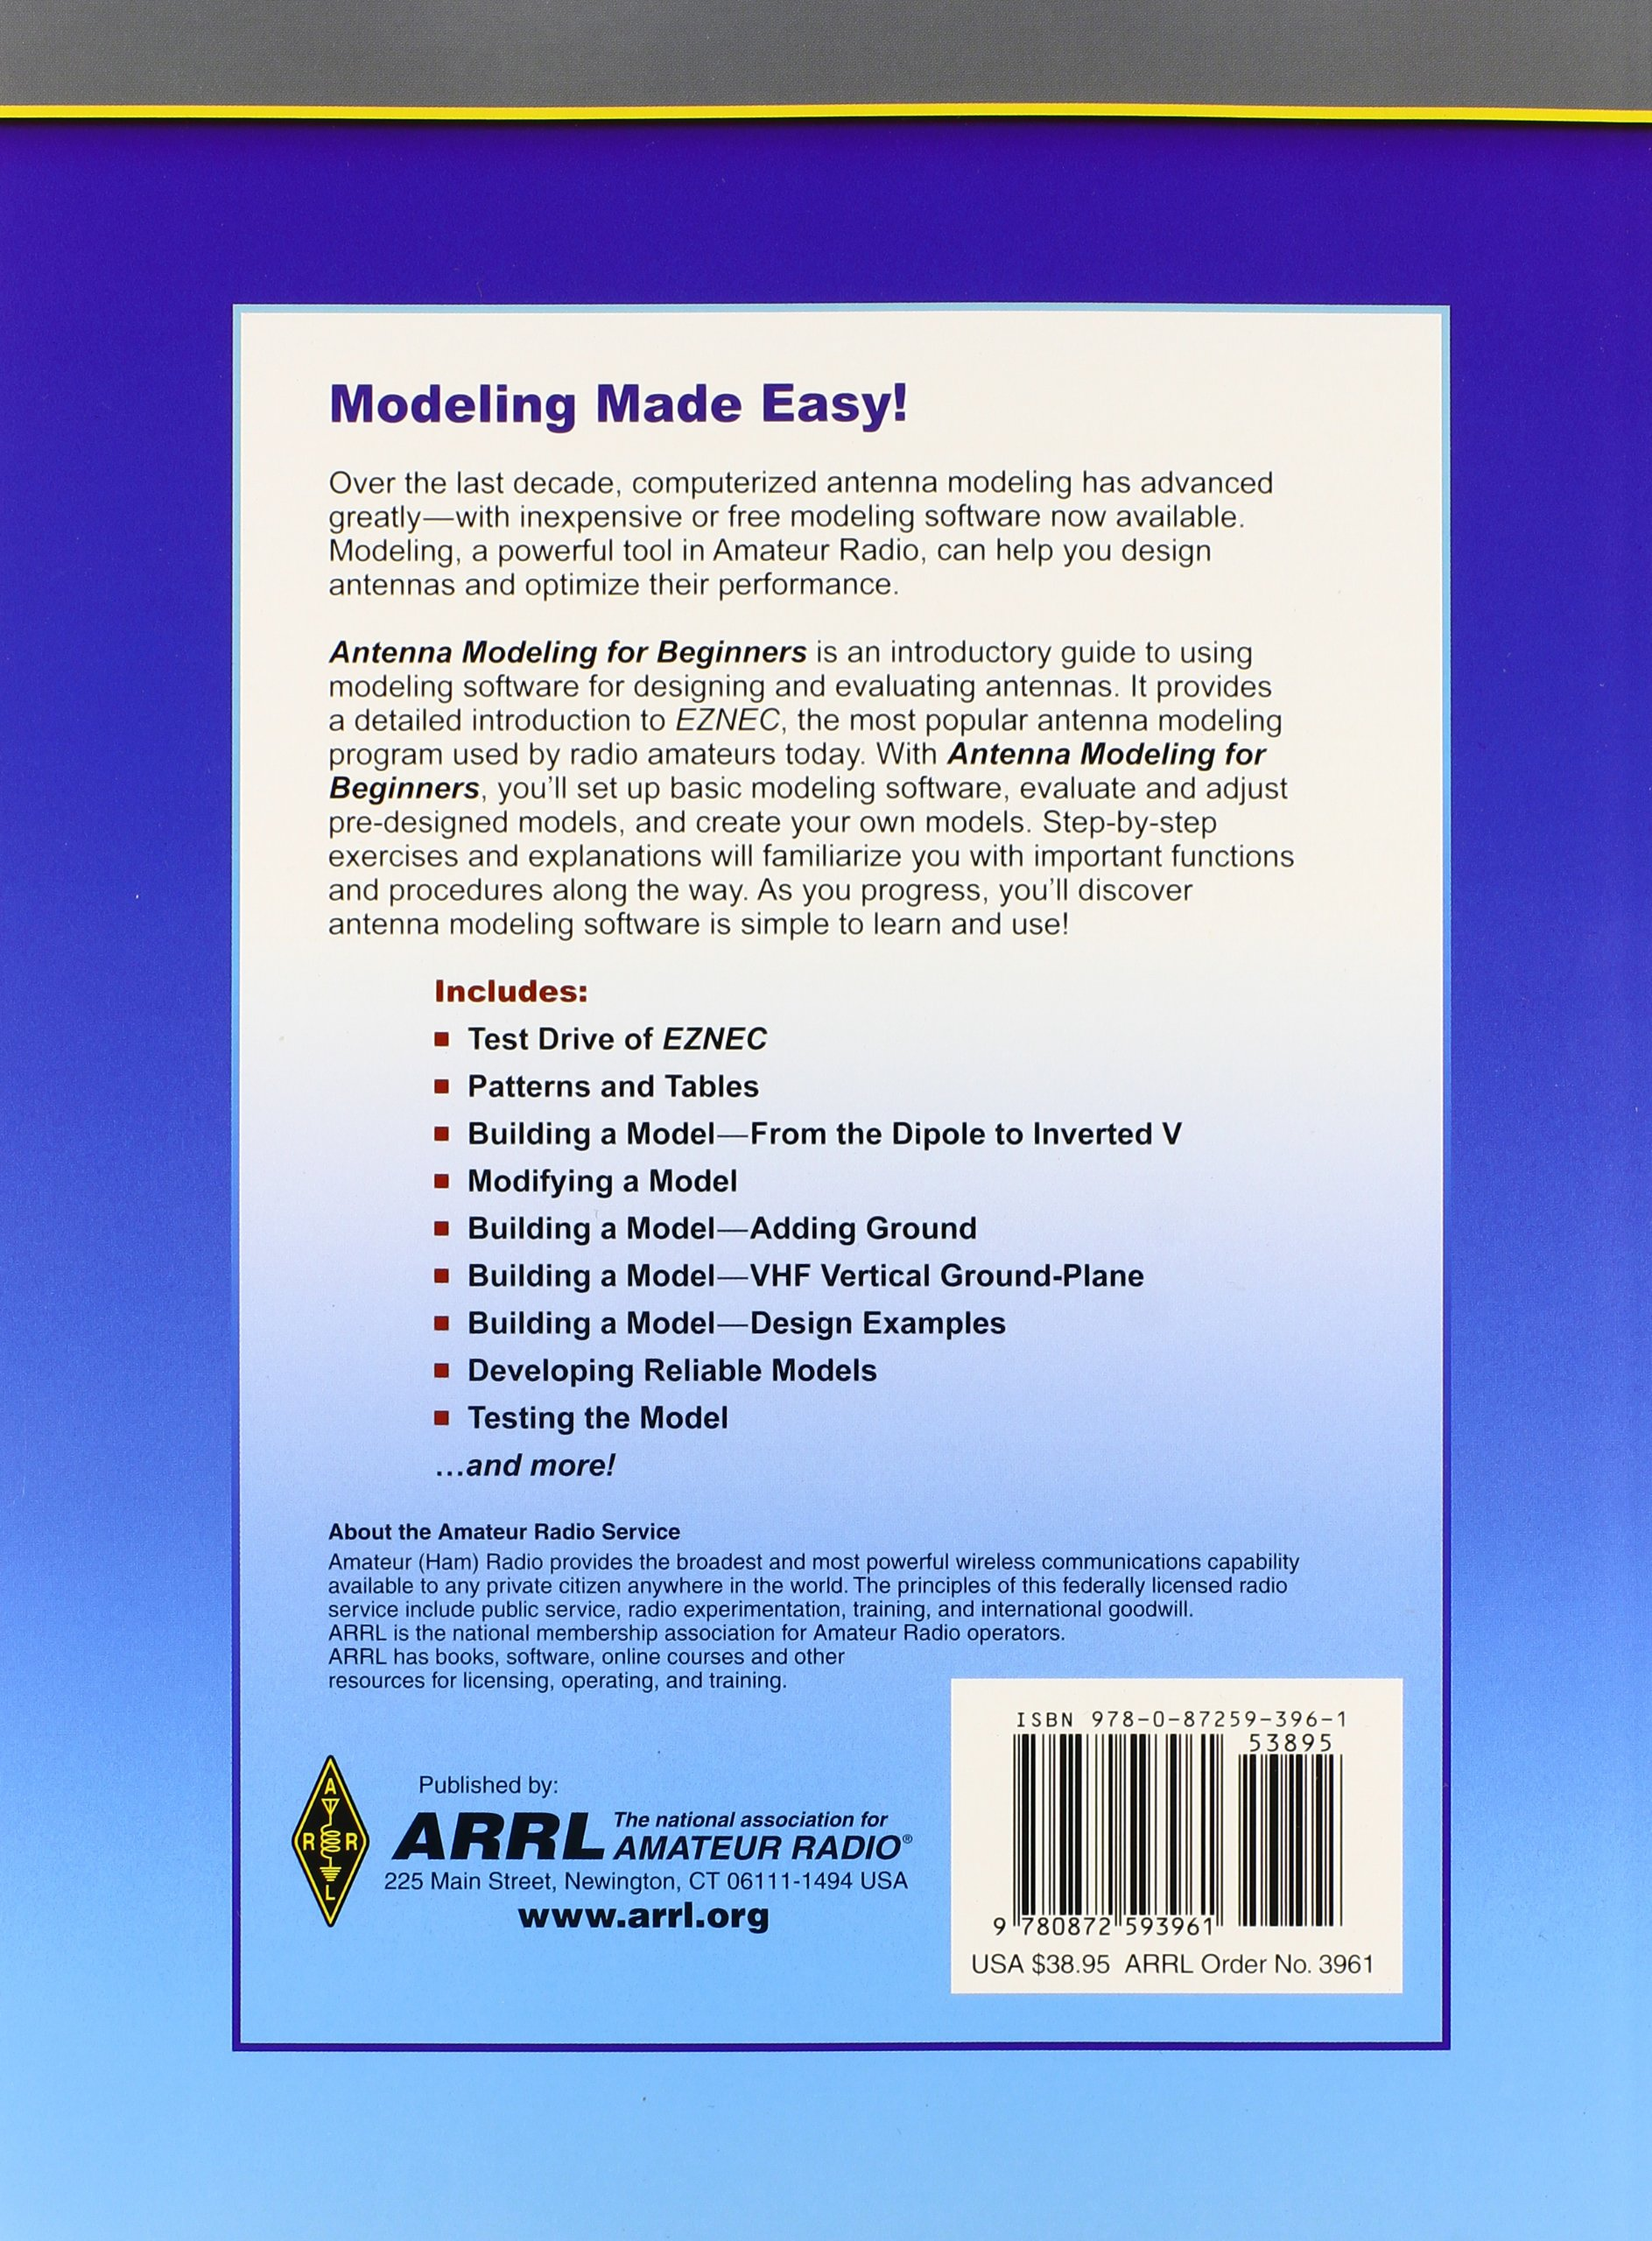 Buy Antenna Modeling for Beginners Book Online at Low Prices